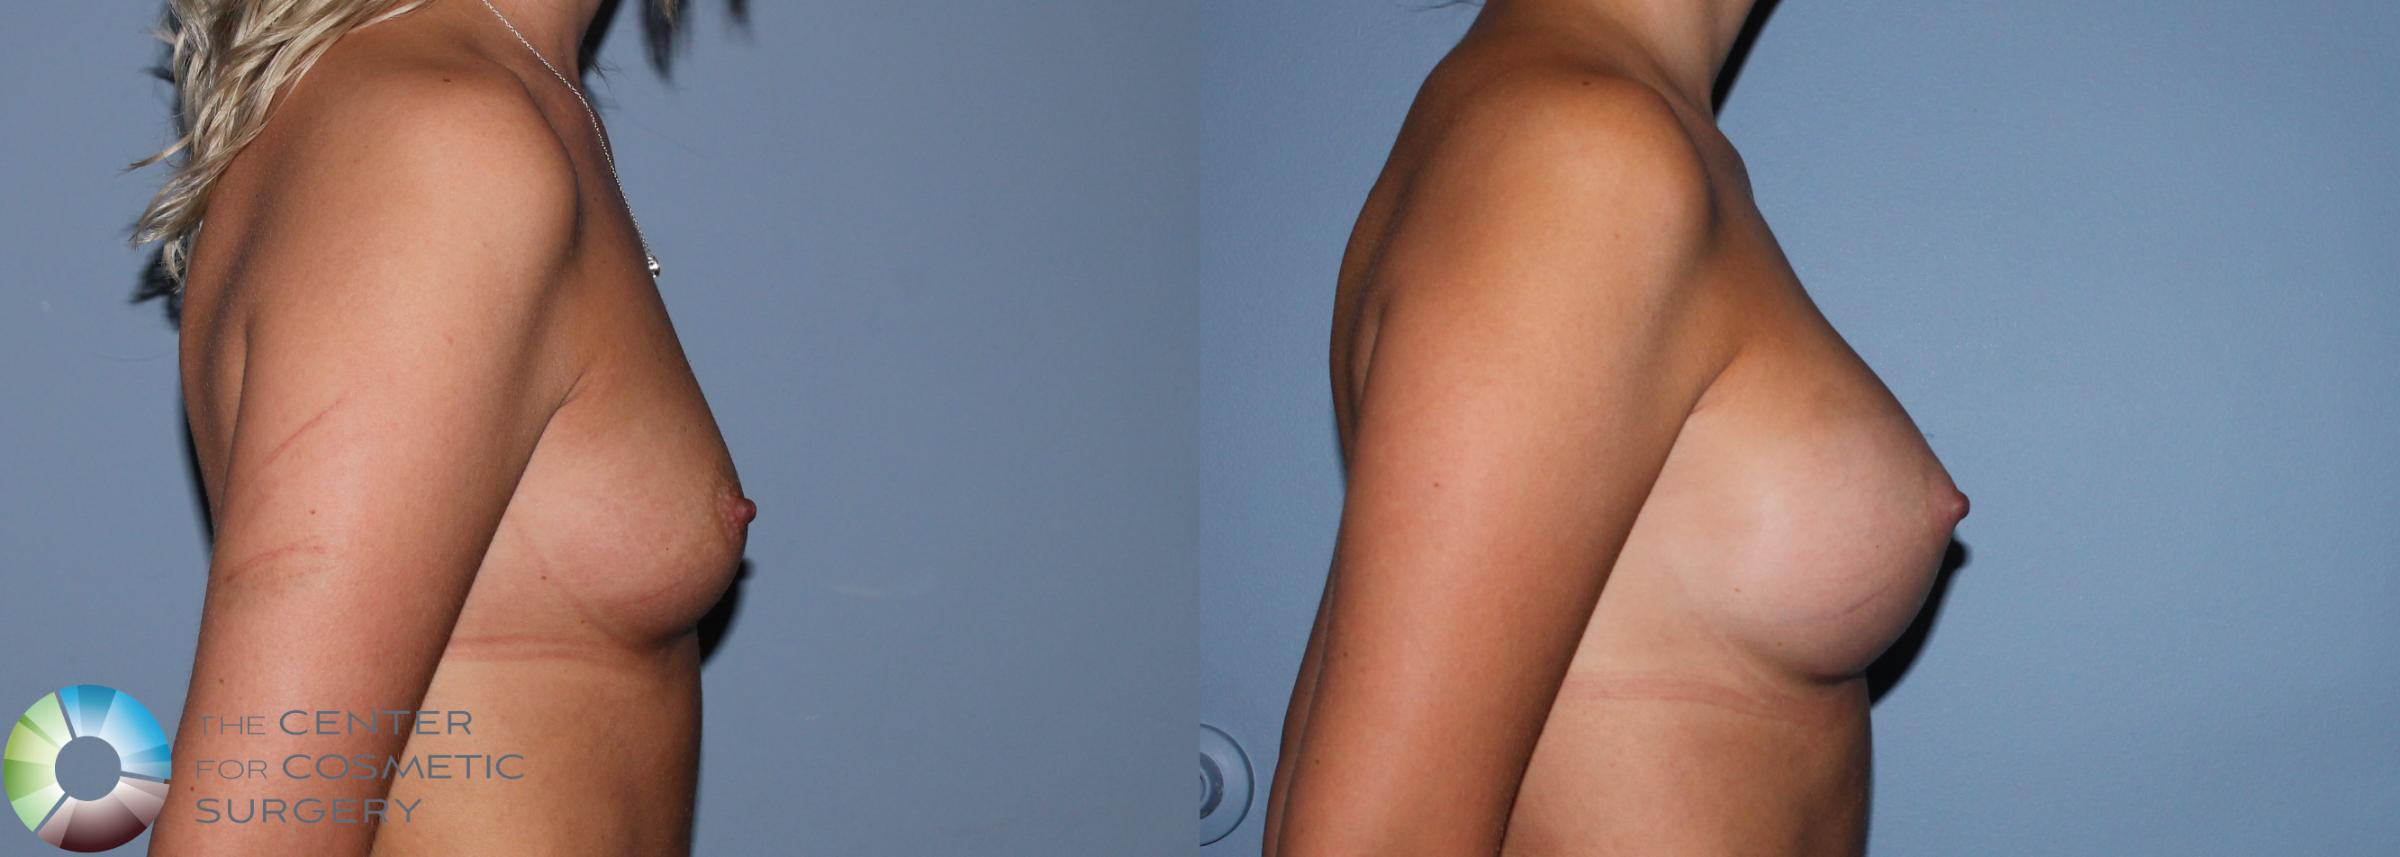 Breast Augmentation Case 761 Before & After View #1 | Golden, CO | The Center for Cosmetic Surgery